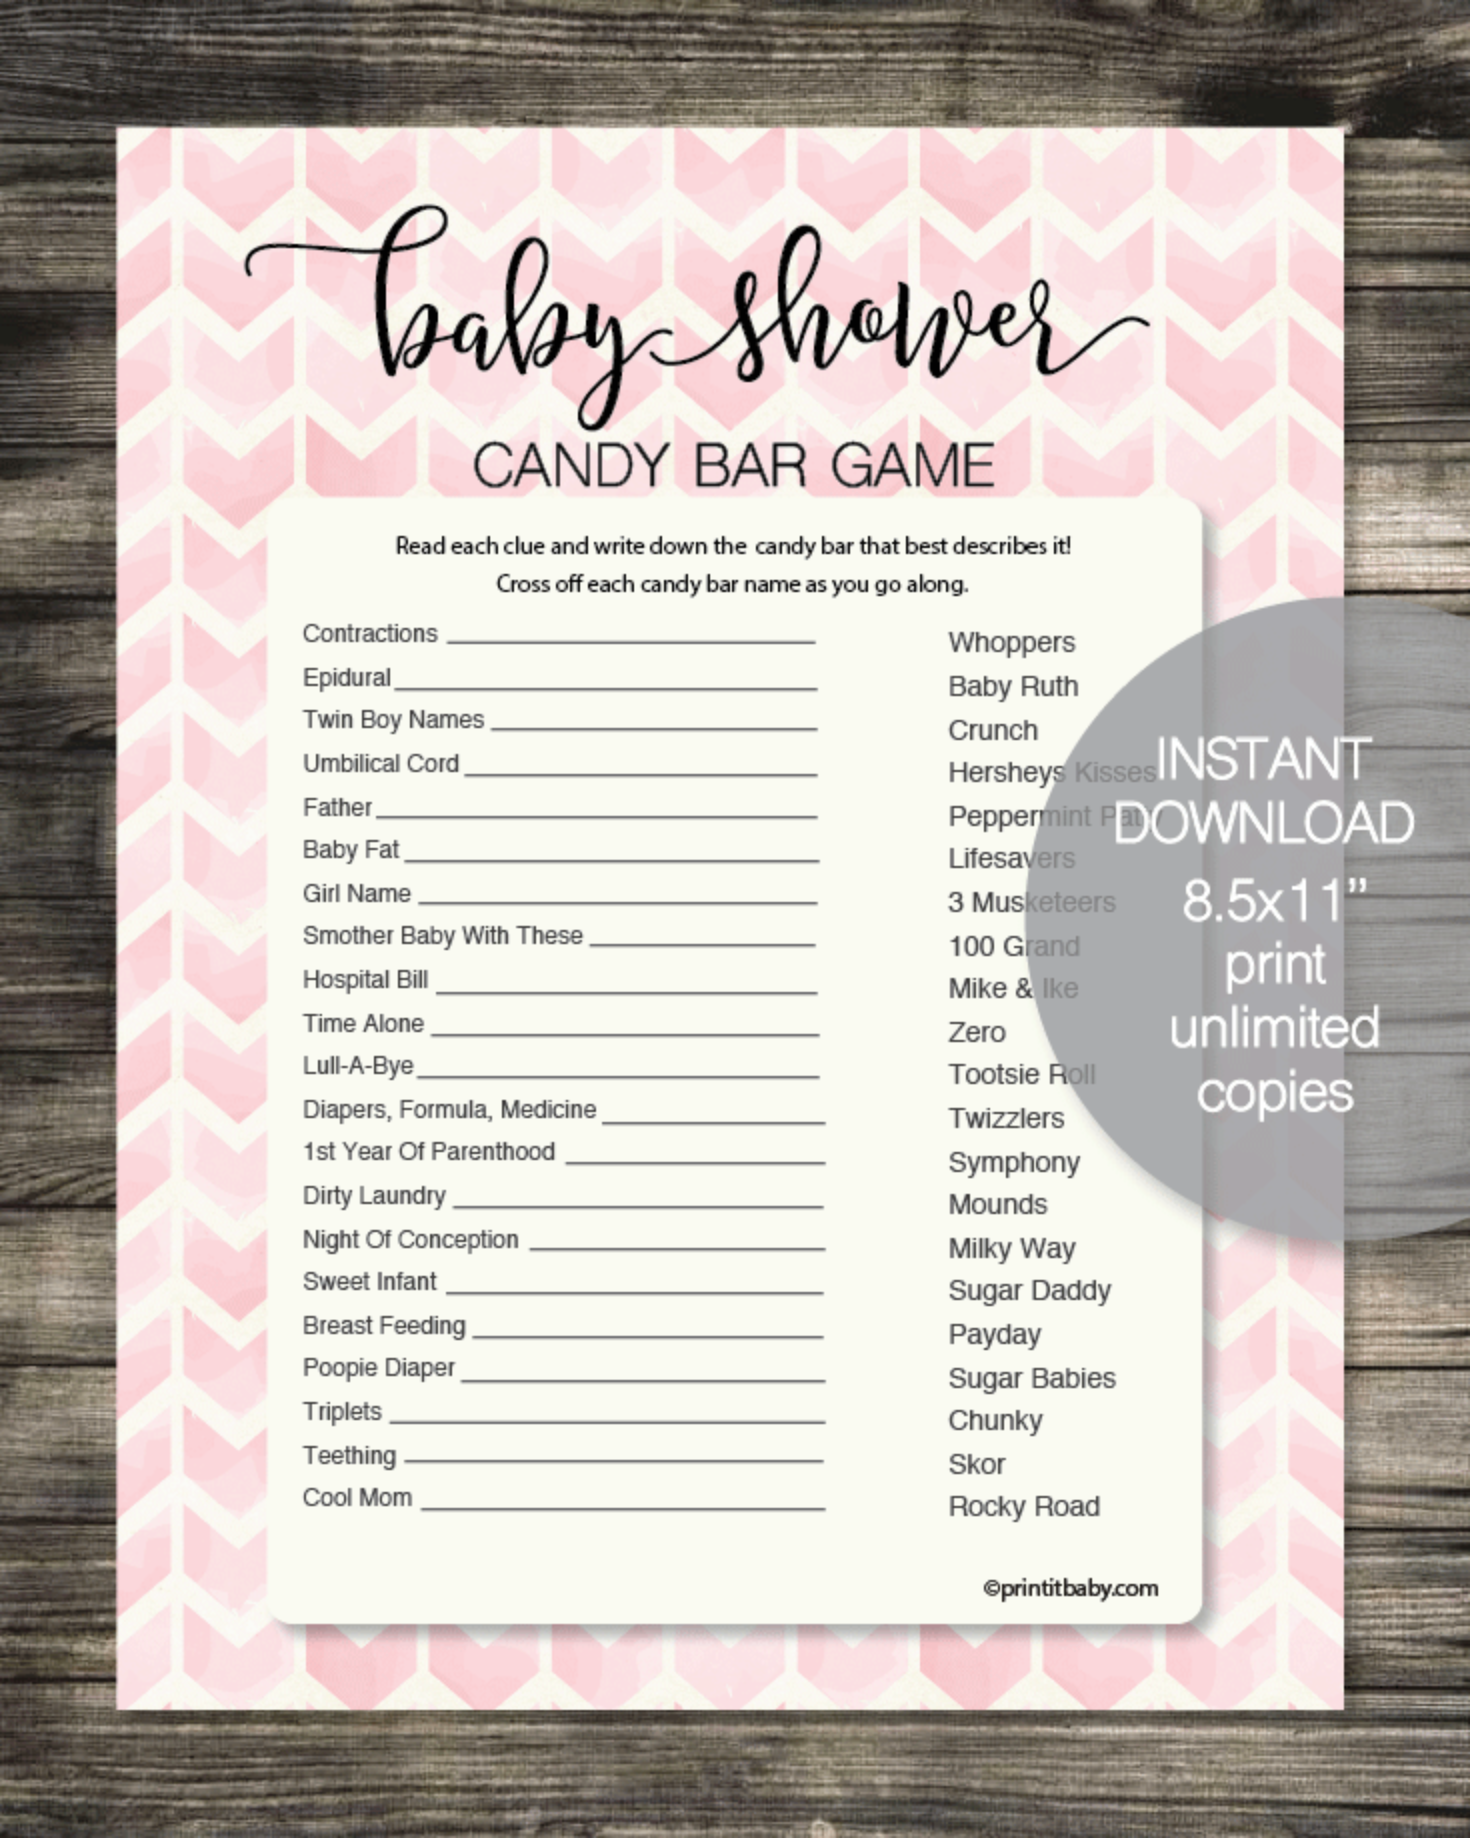 Baby Shower Candy Bar Game - Pink Chevron Watercolor Boho Arrows